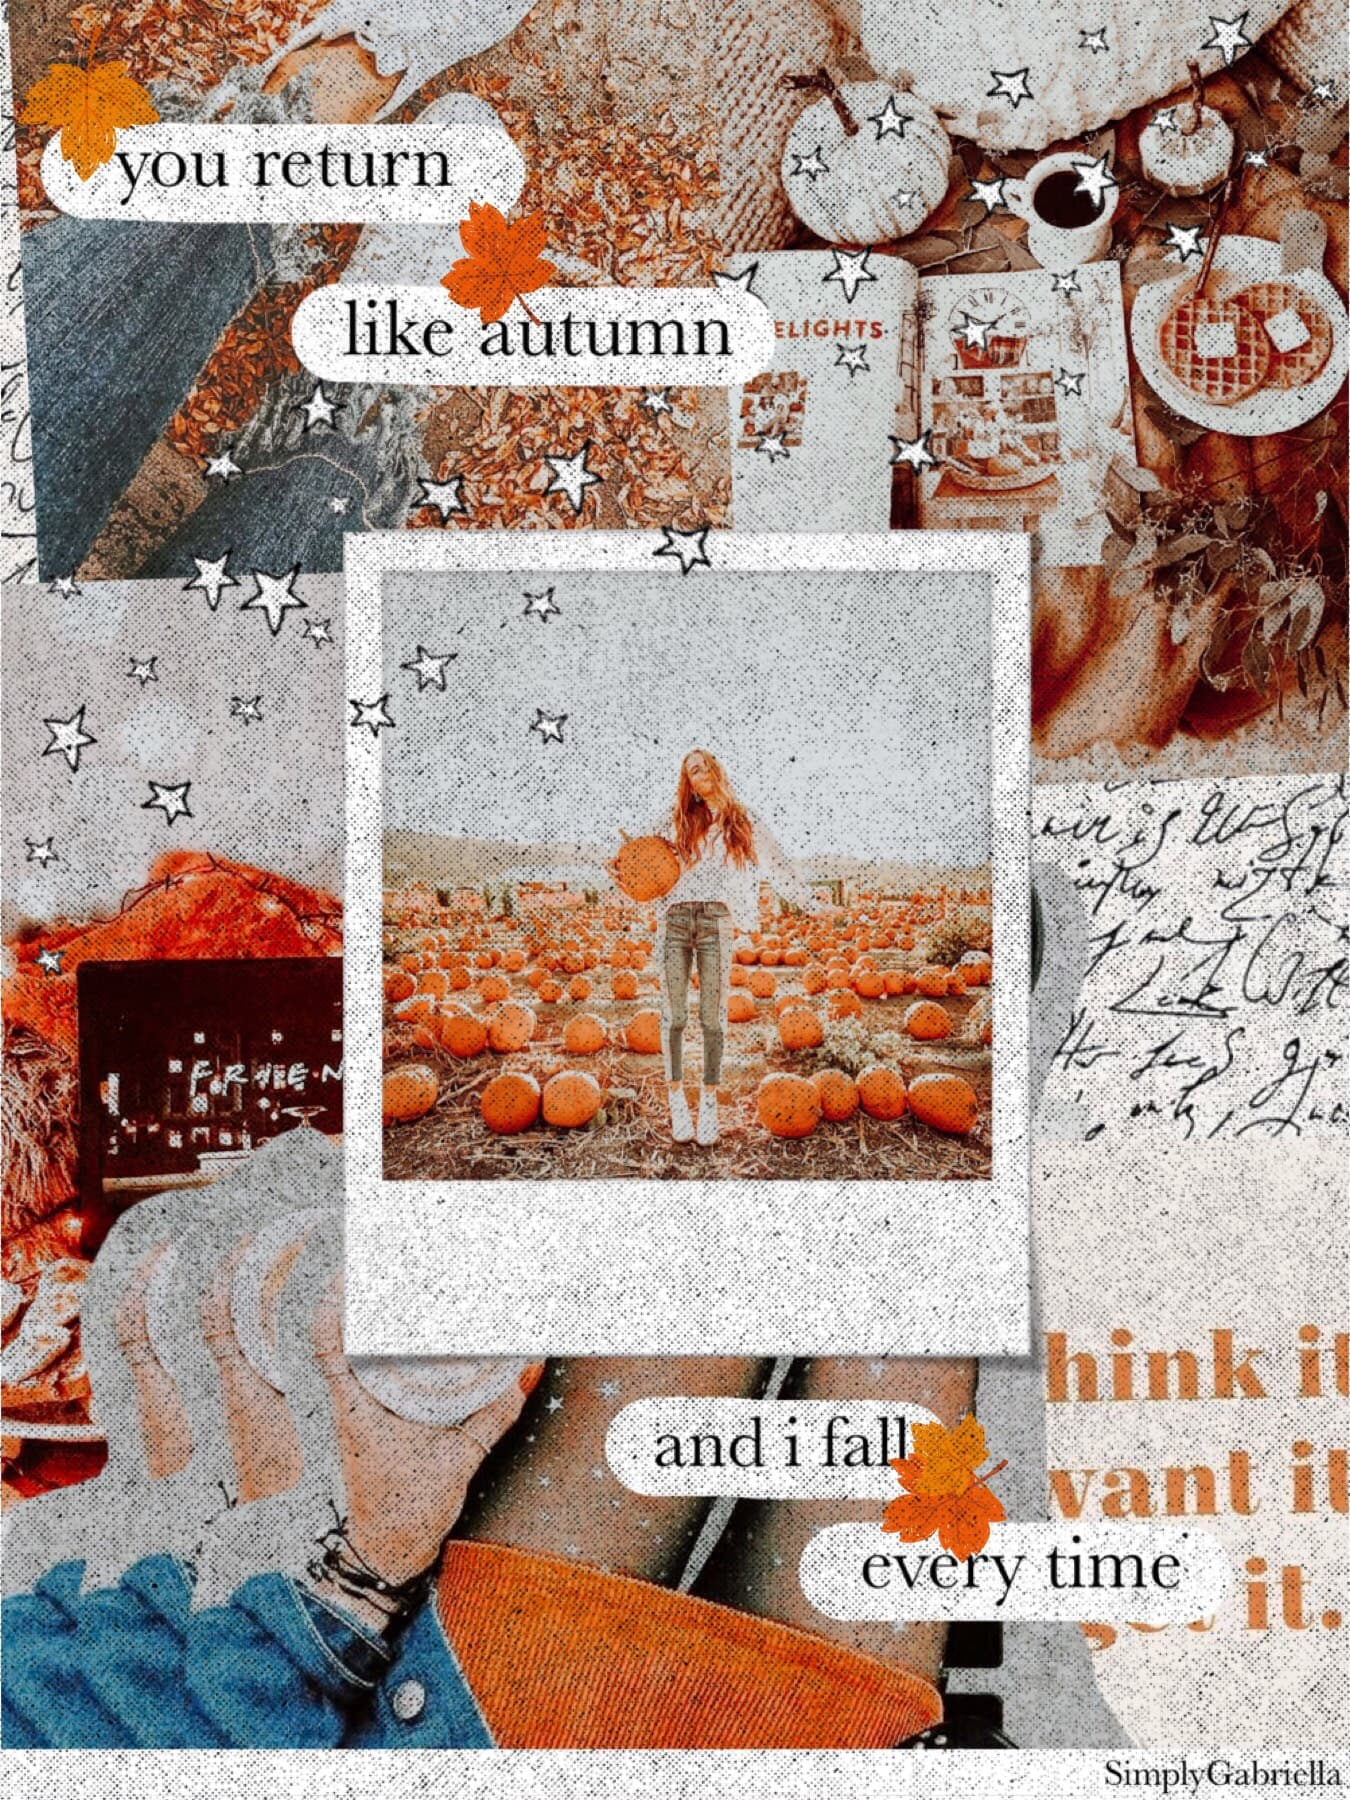 [ t a p ] hi!  this was my entry to pc's fall contest  i was really feeling some fall vibes today  what weather is it like where you live rn? it's 68 degrees and rainy here #FALLVIBES #PC #MAYBENOT #AESTHETIC 🍁